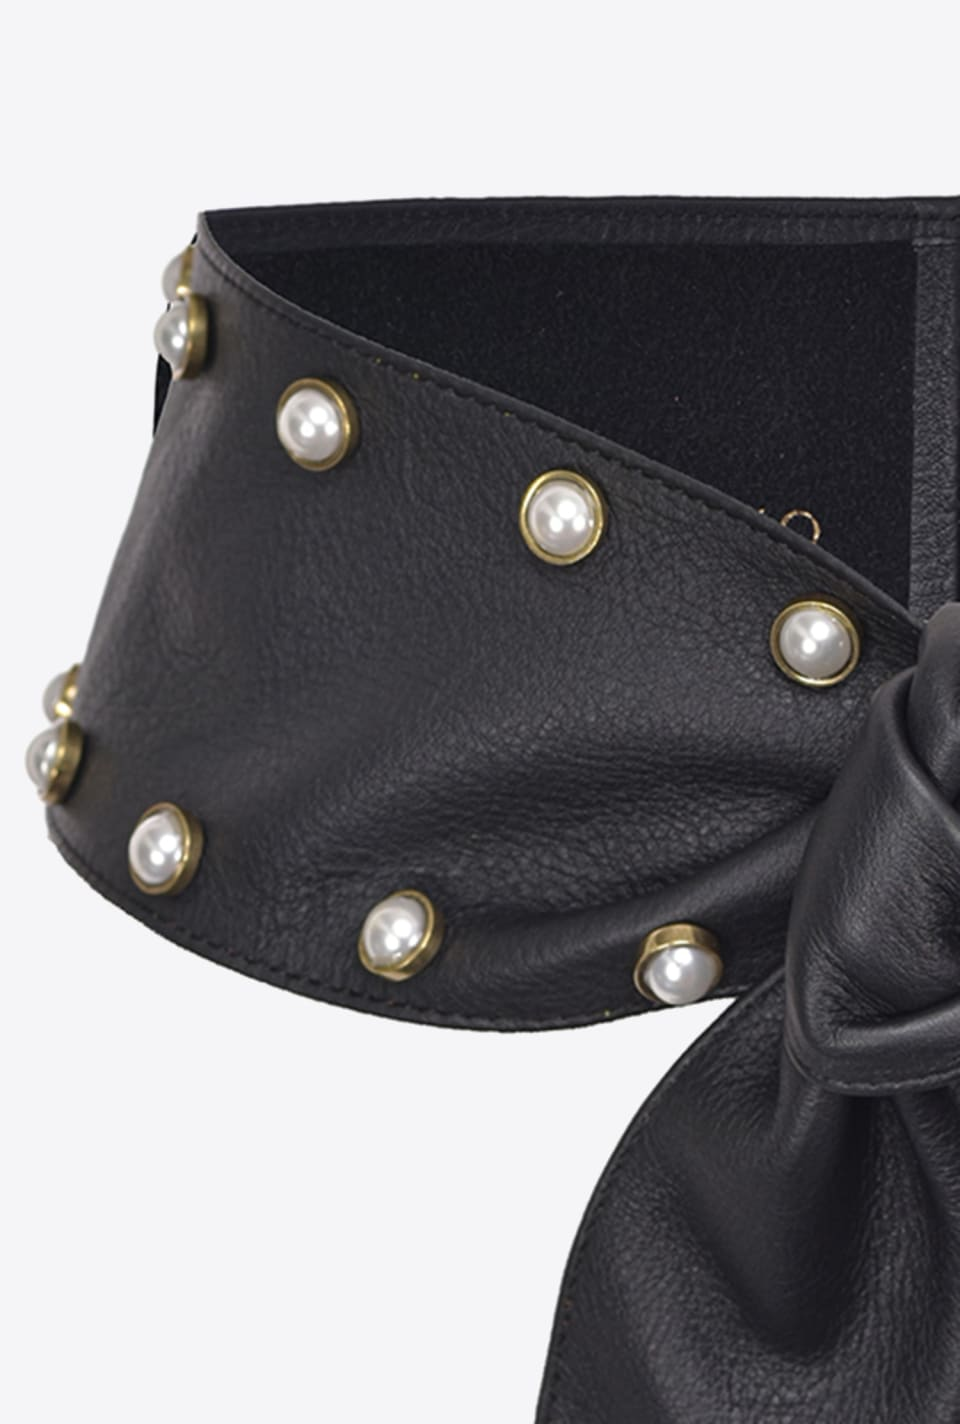 Pearl-embellished Nappa leather belt - Pinko